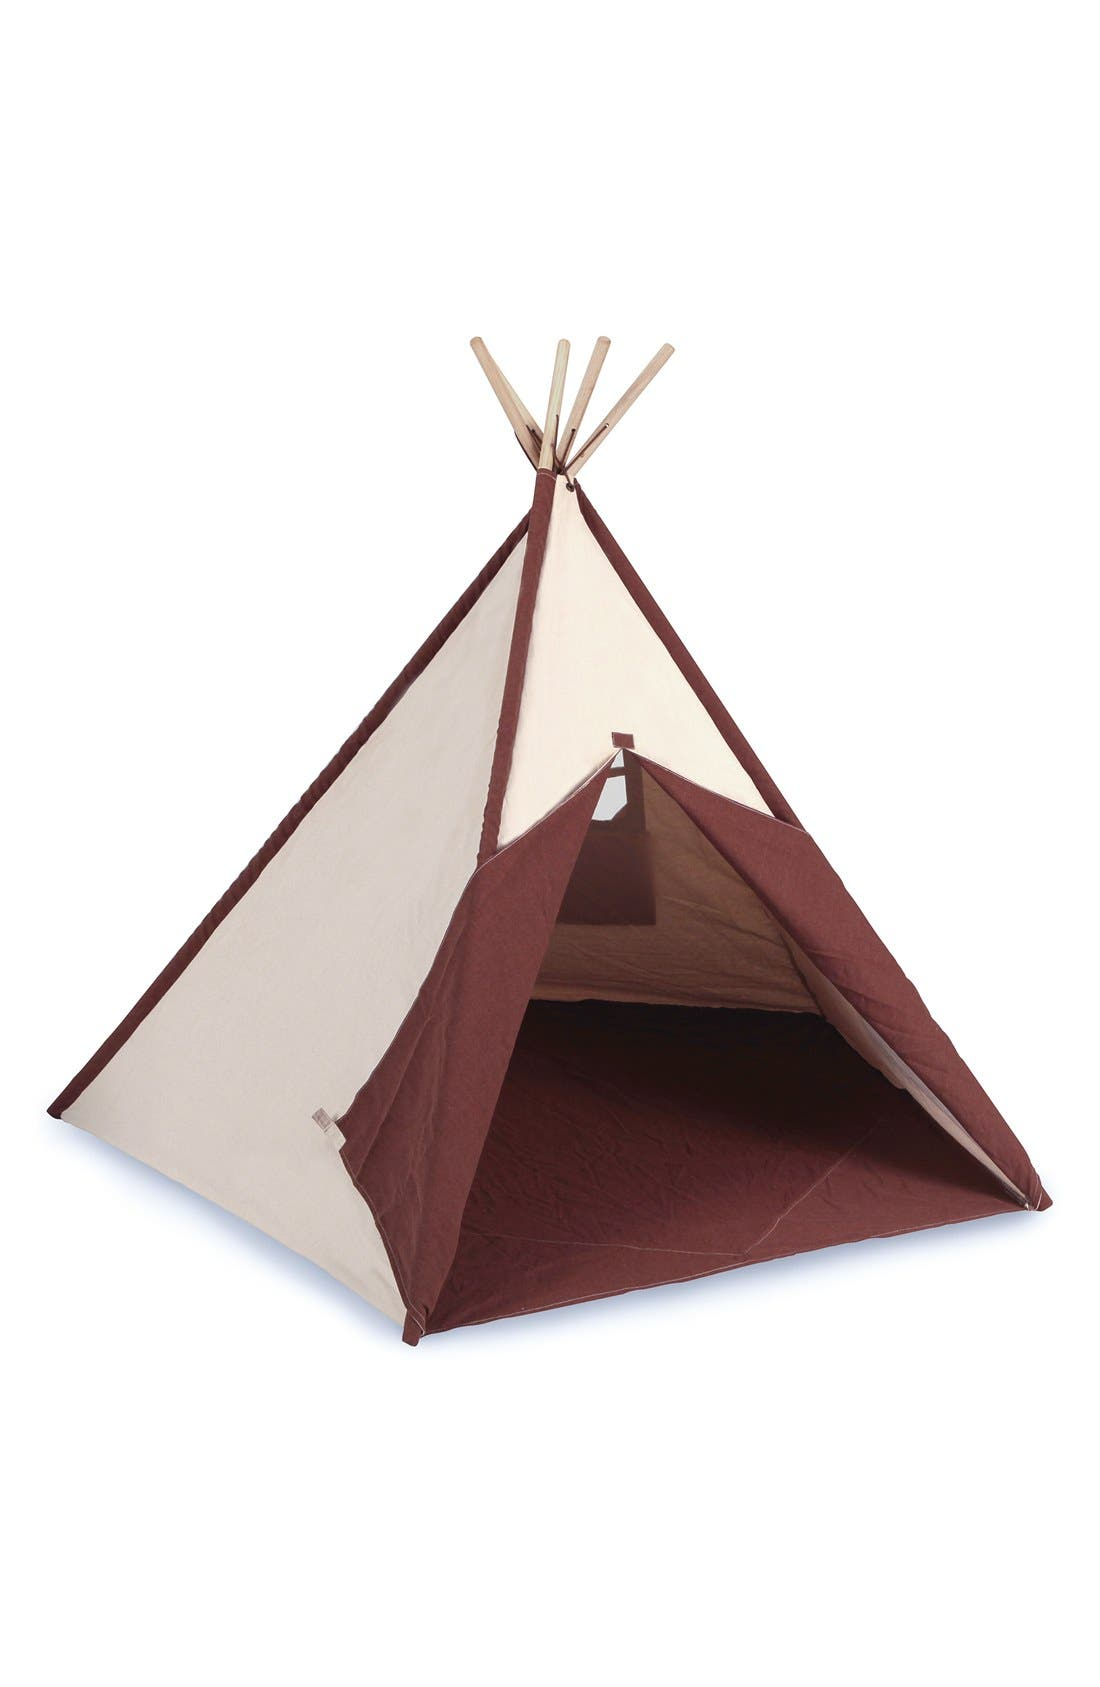 Alternate Image 1 Selected - Pacific Play Tents Cotton Canvas Teepee